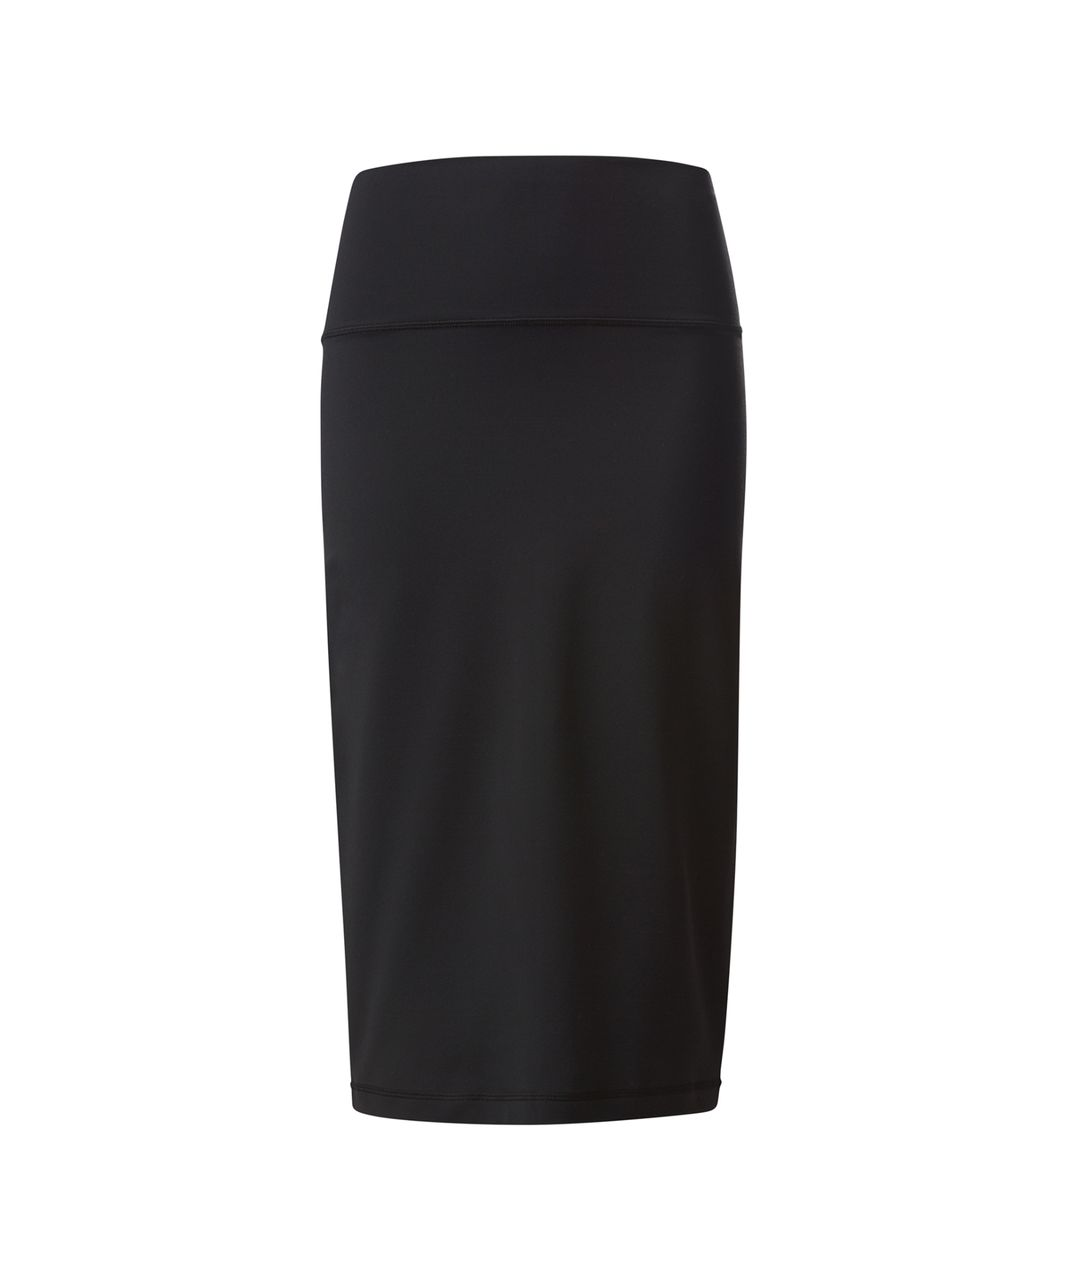 Lululemon Tube And From Skirt - Black